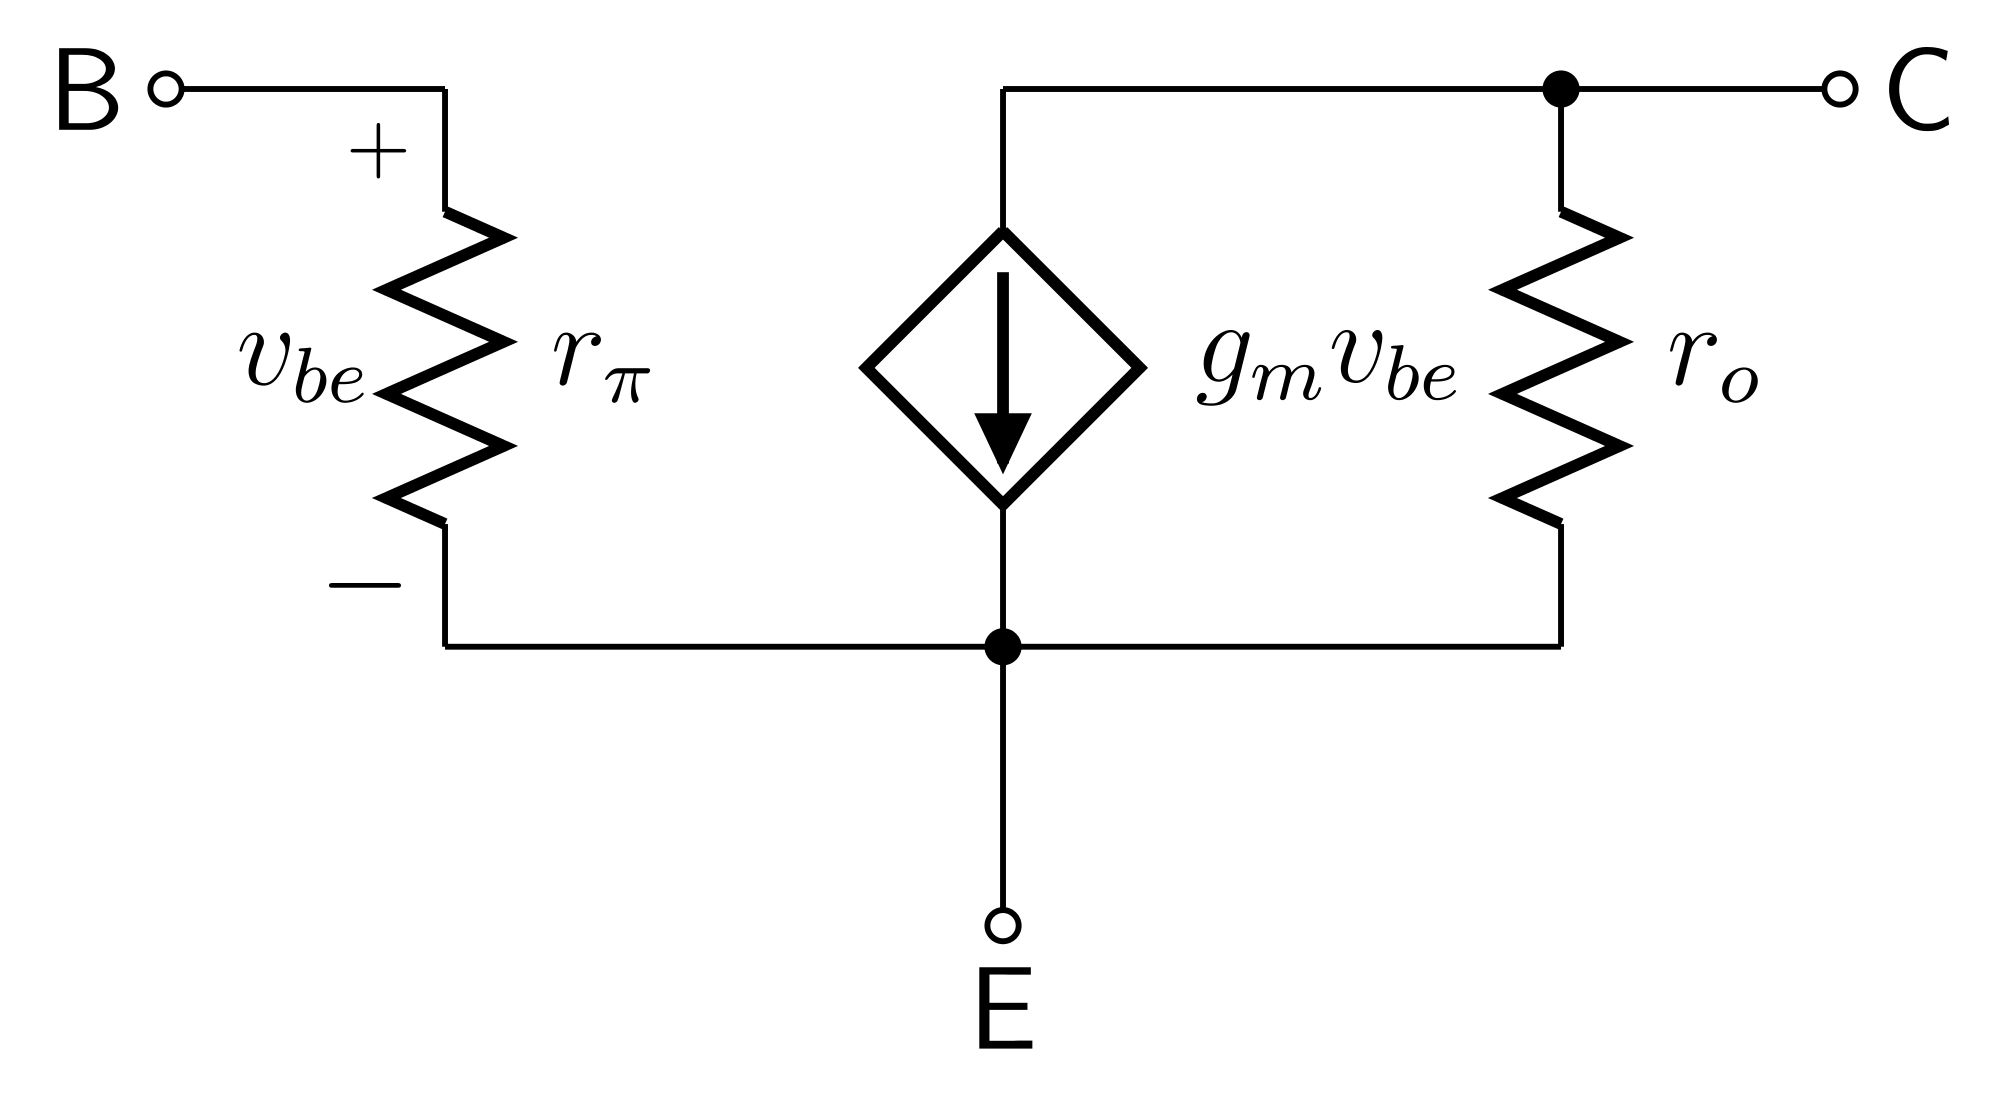 calculate impedance of circuit